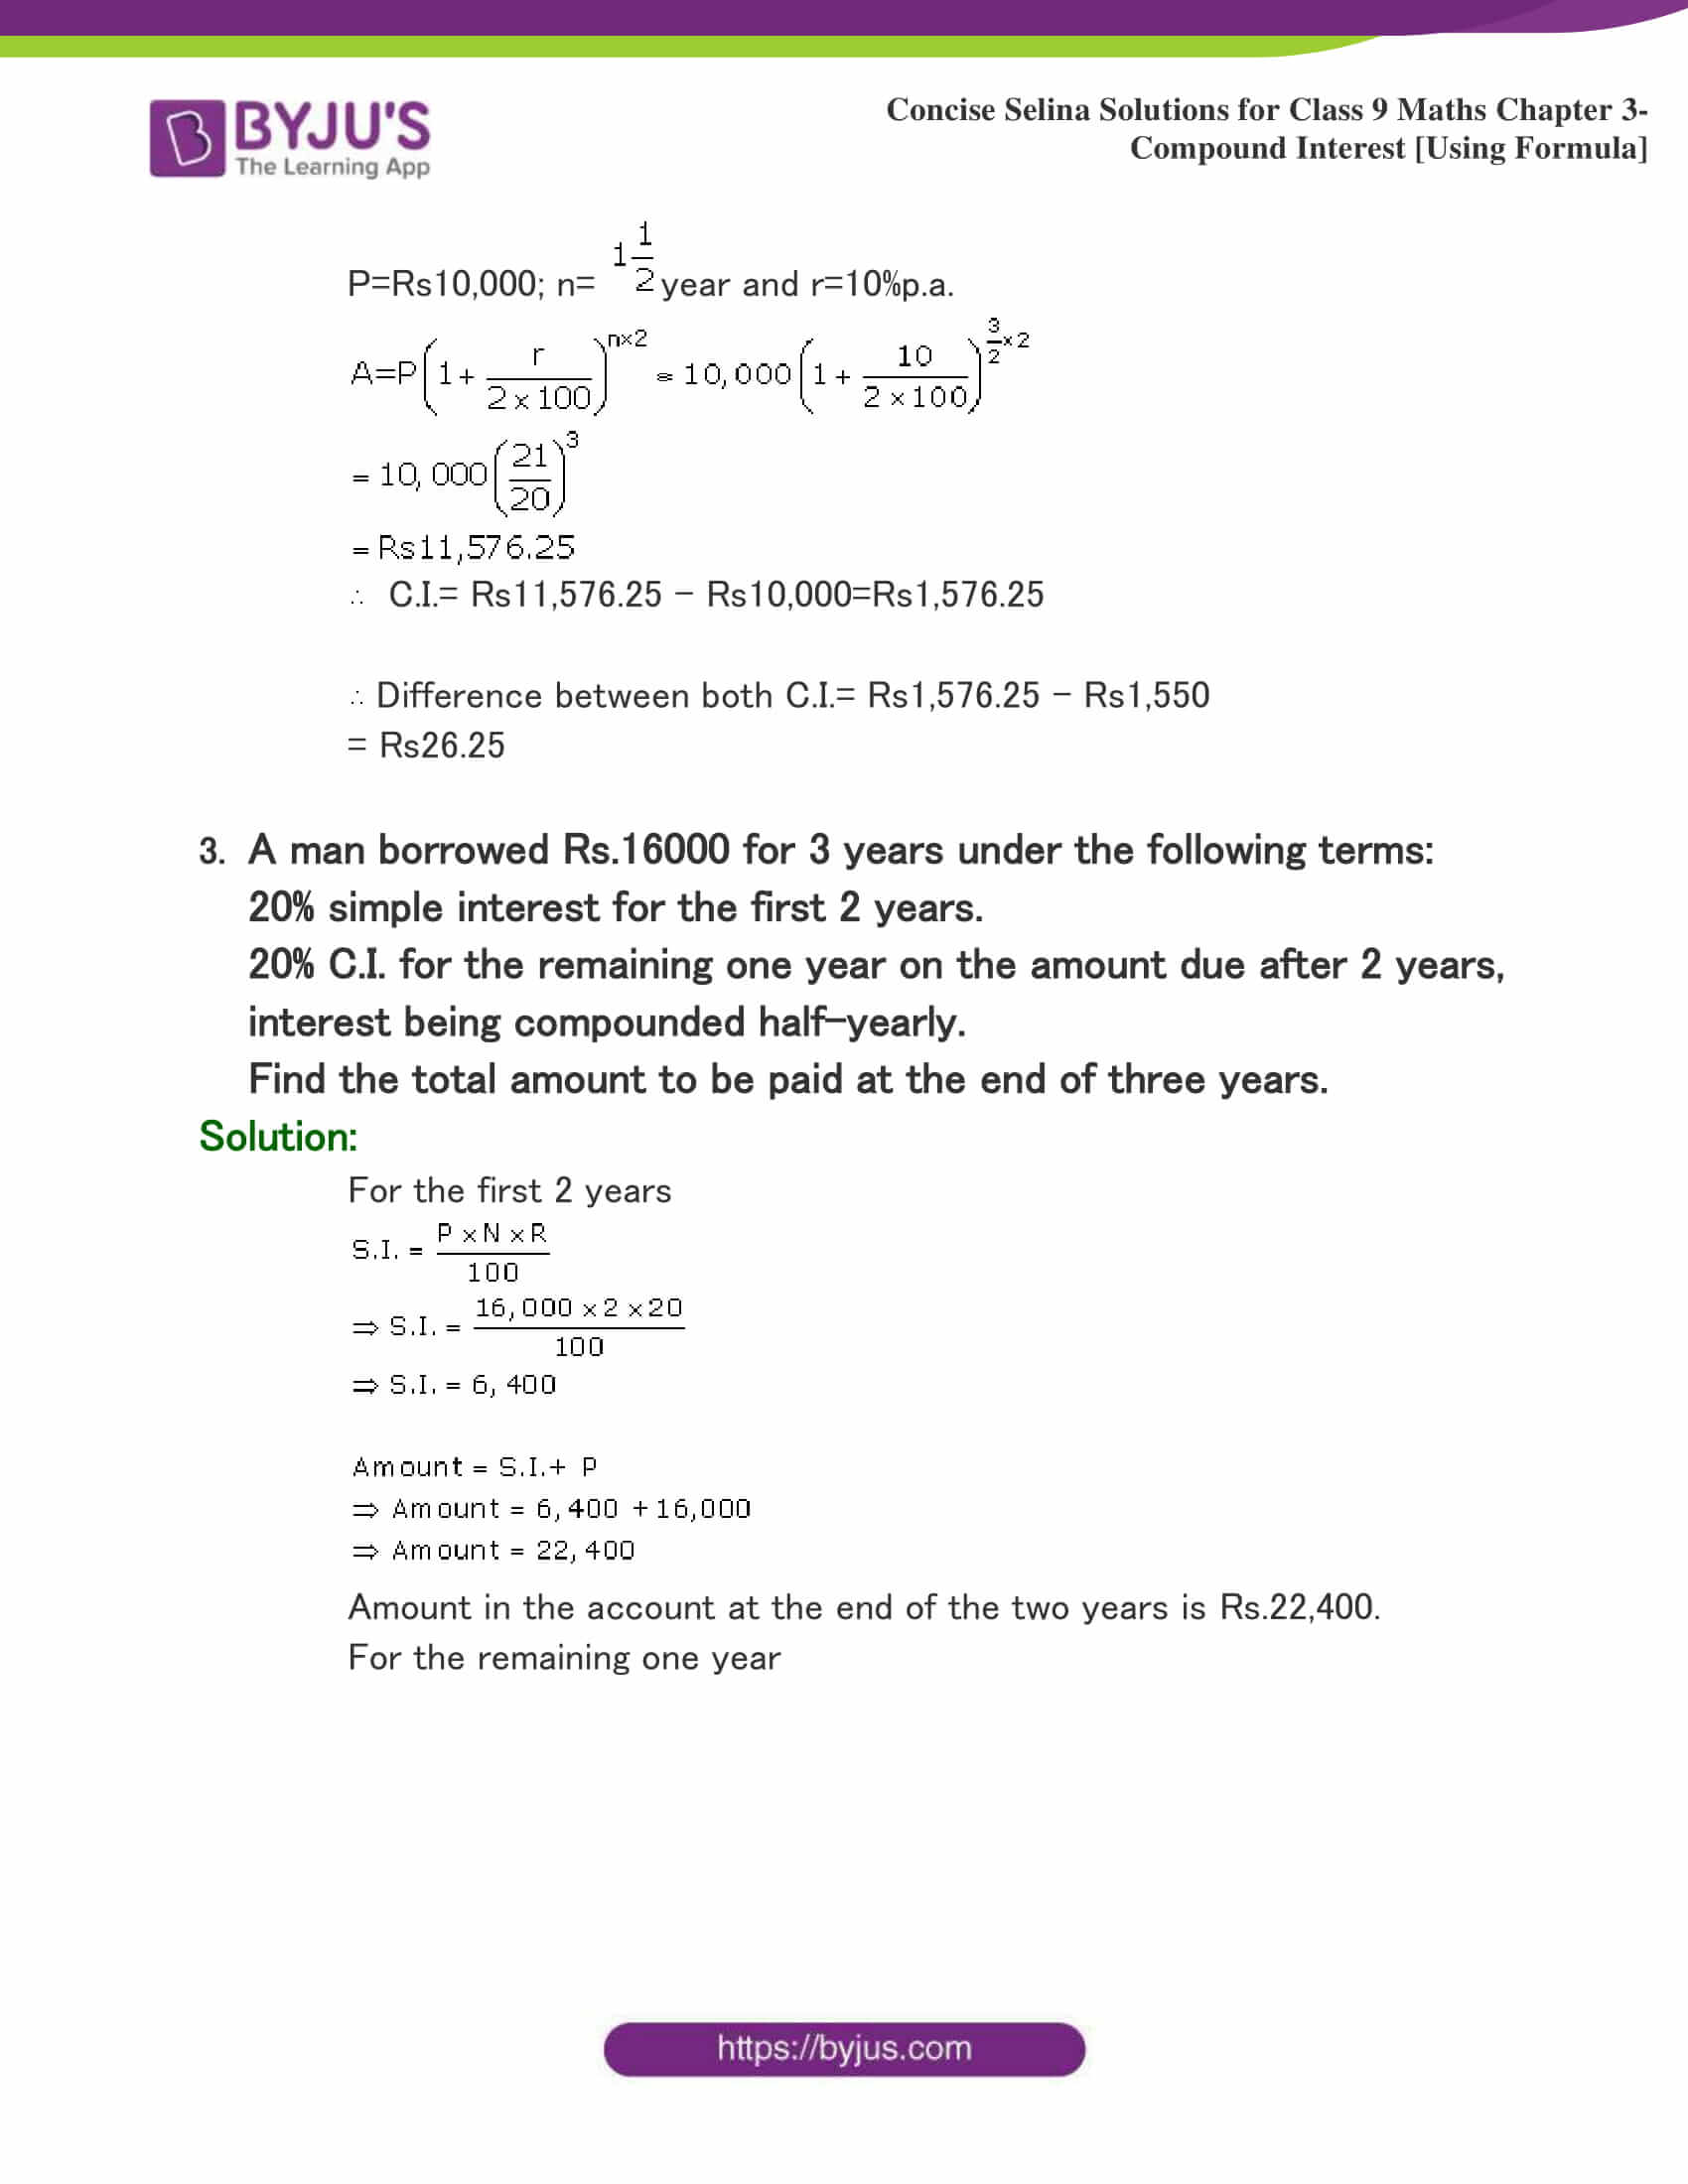 Selina Solutions Class 9 Maths Chapter 3 Compound Interest Using Formula part 23